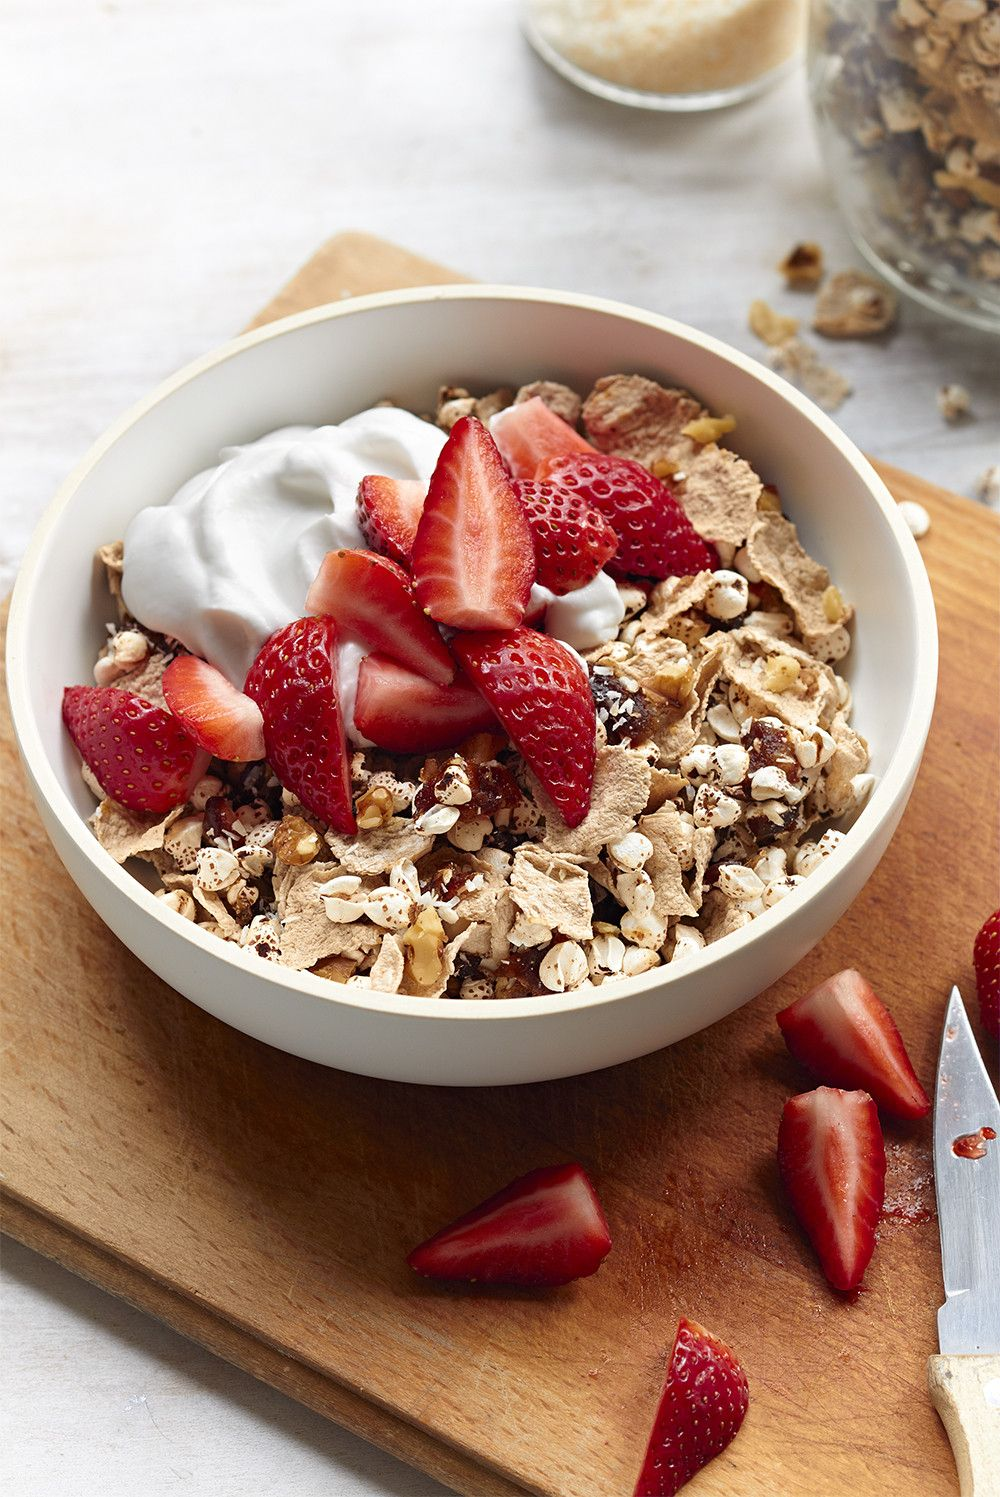 Sirt muesli belly fillers pinterest muesli foods and healthy move over paleo plan and forget the diet according to nutritionists foods that activate our sirtuin genes are where its at forumfinder Choice Image